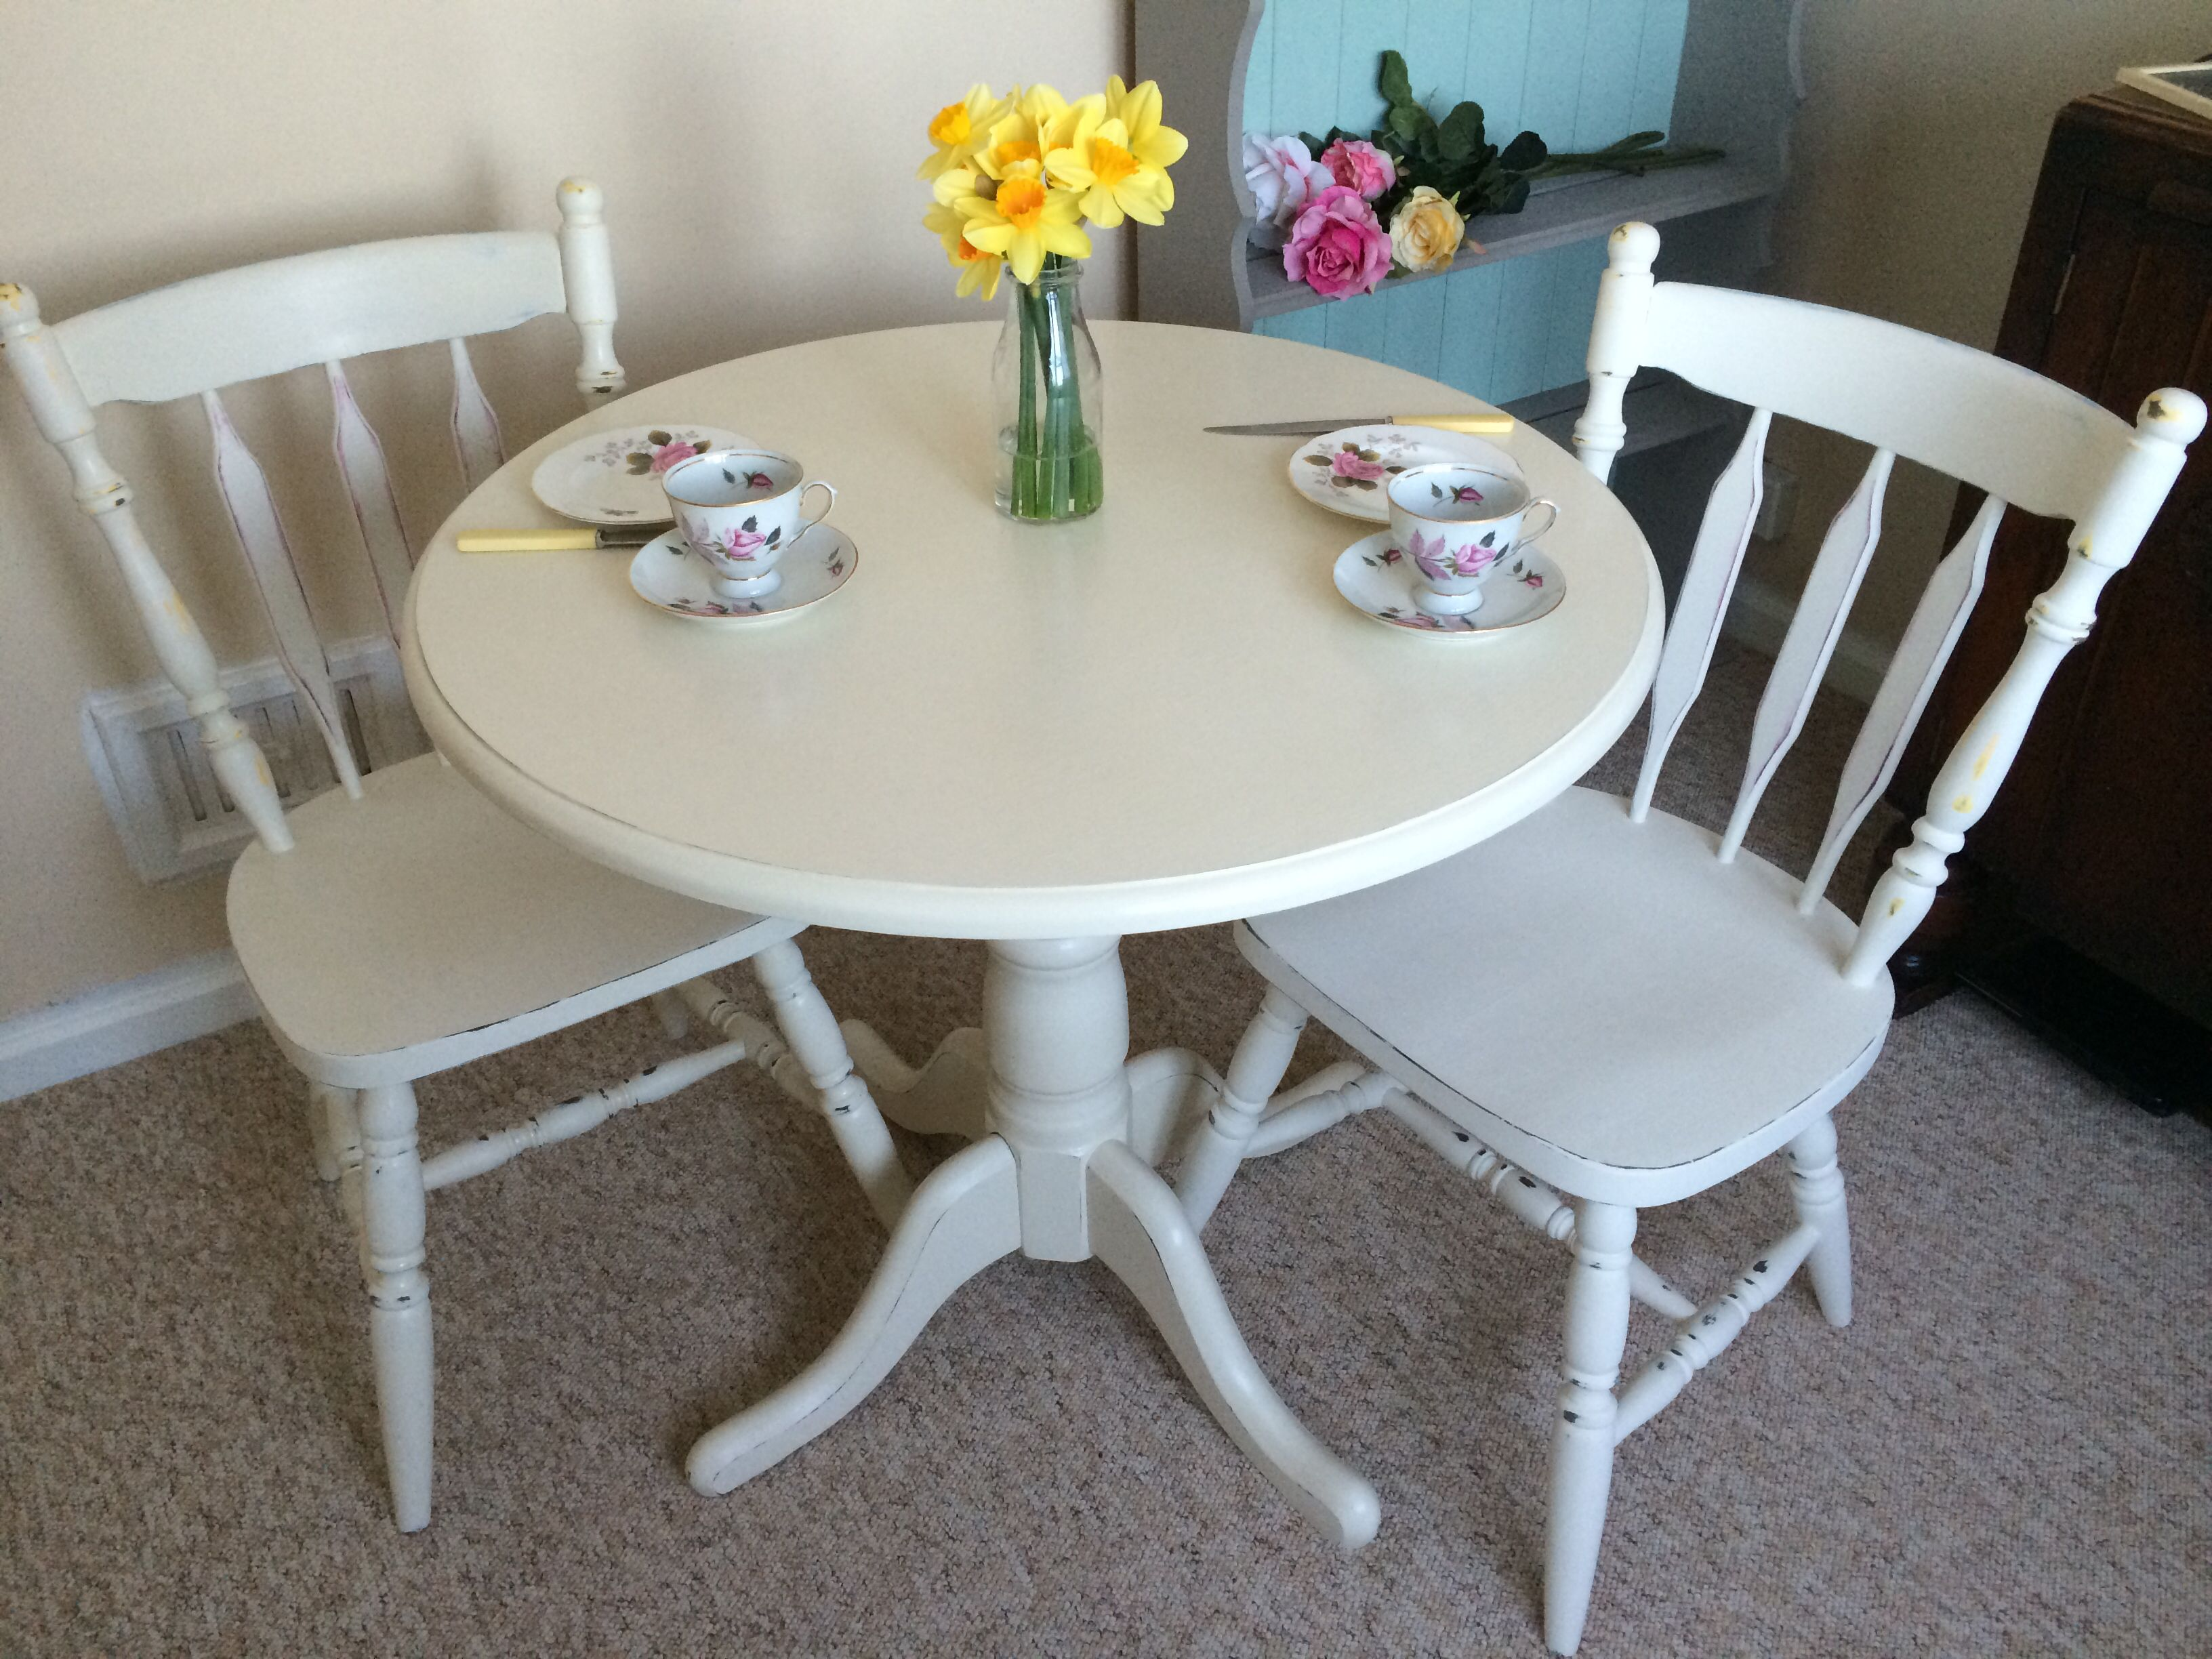 Cute Little Two Seater Table And Chairs Great For A Small Kitchen